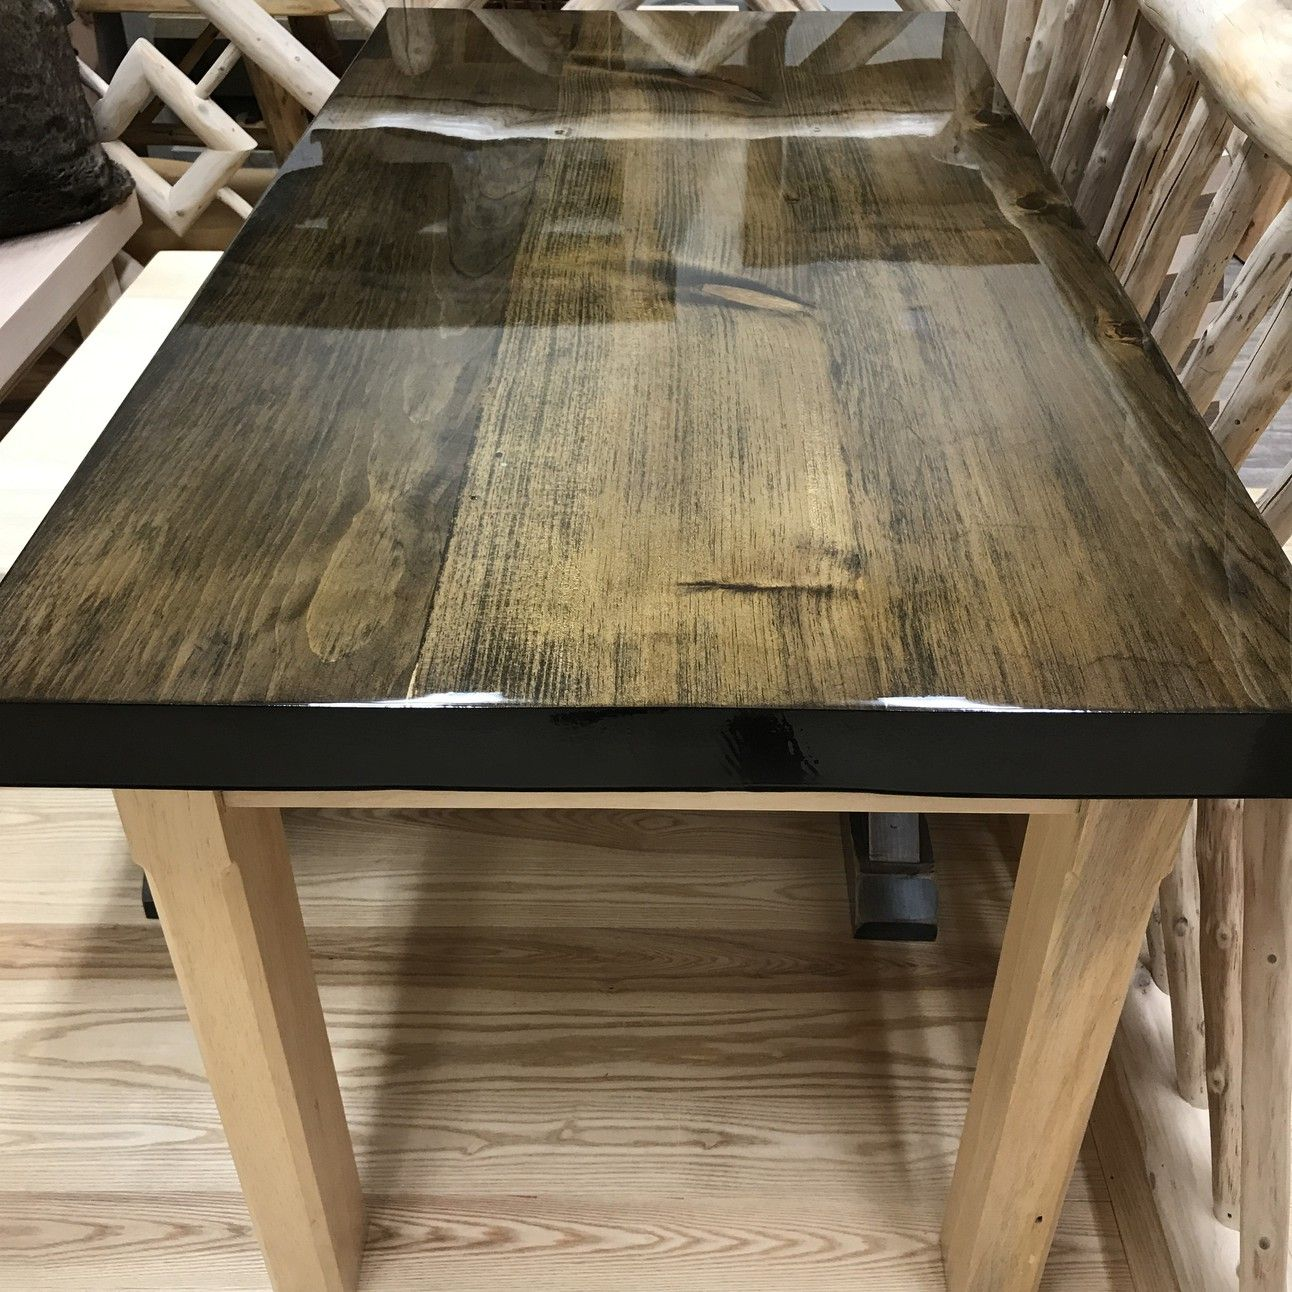 e462845d8e180 Pine slab dining table with liquid glass finish